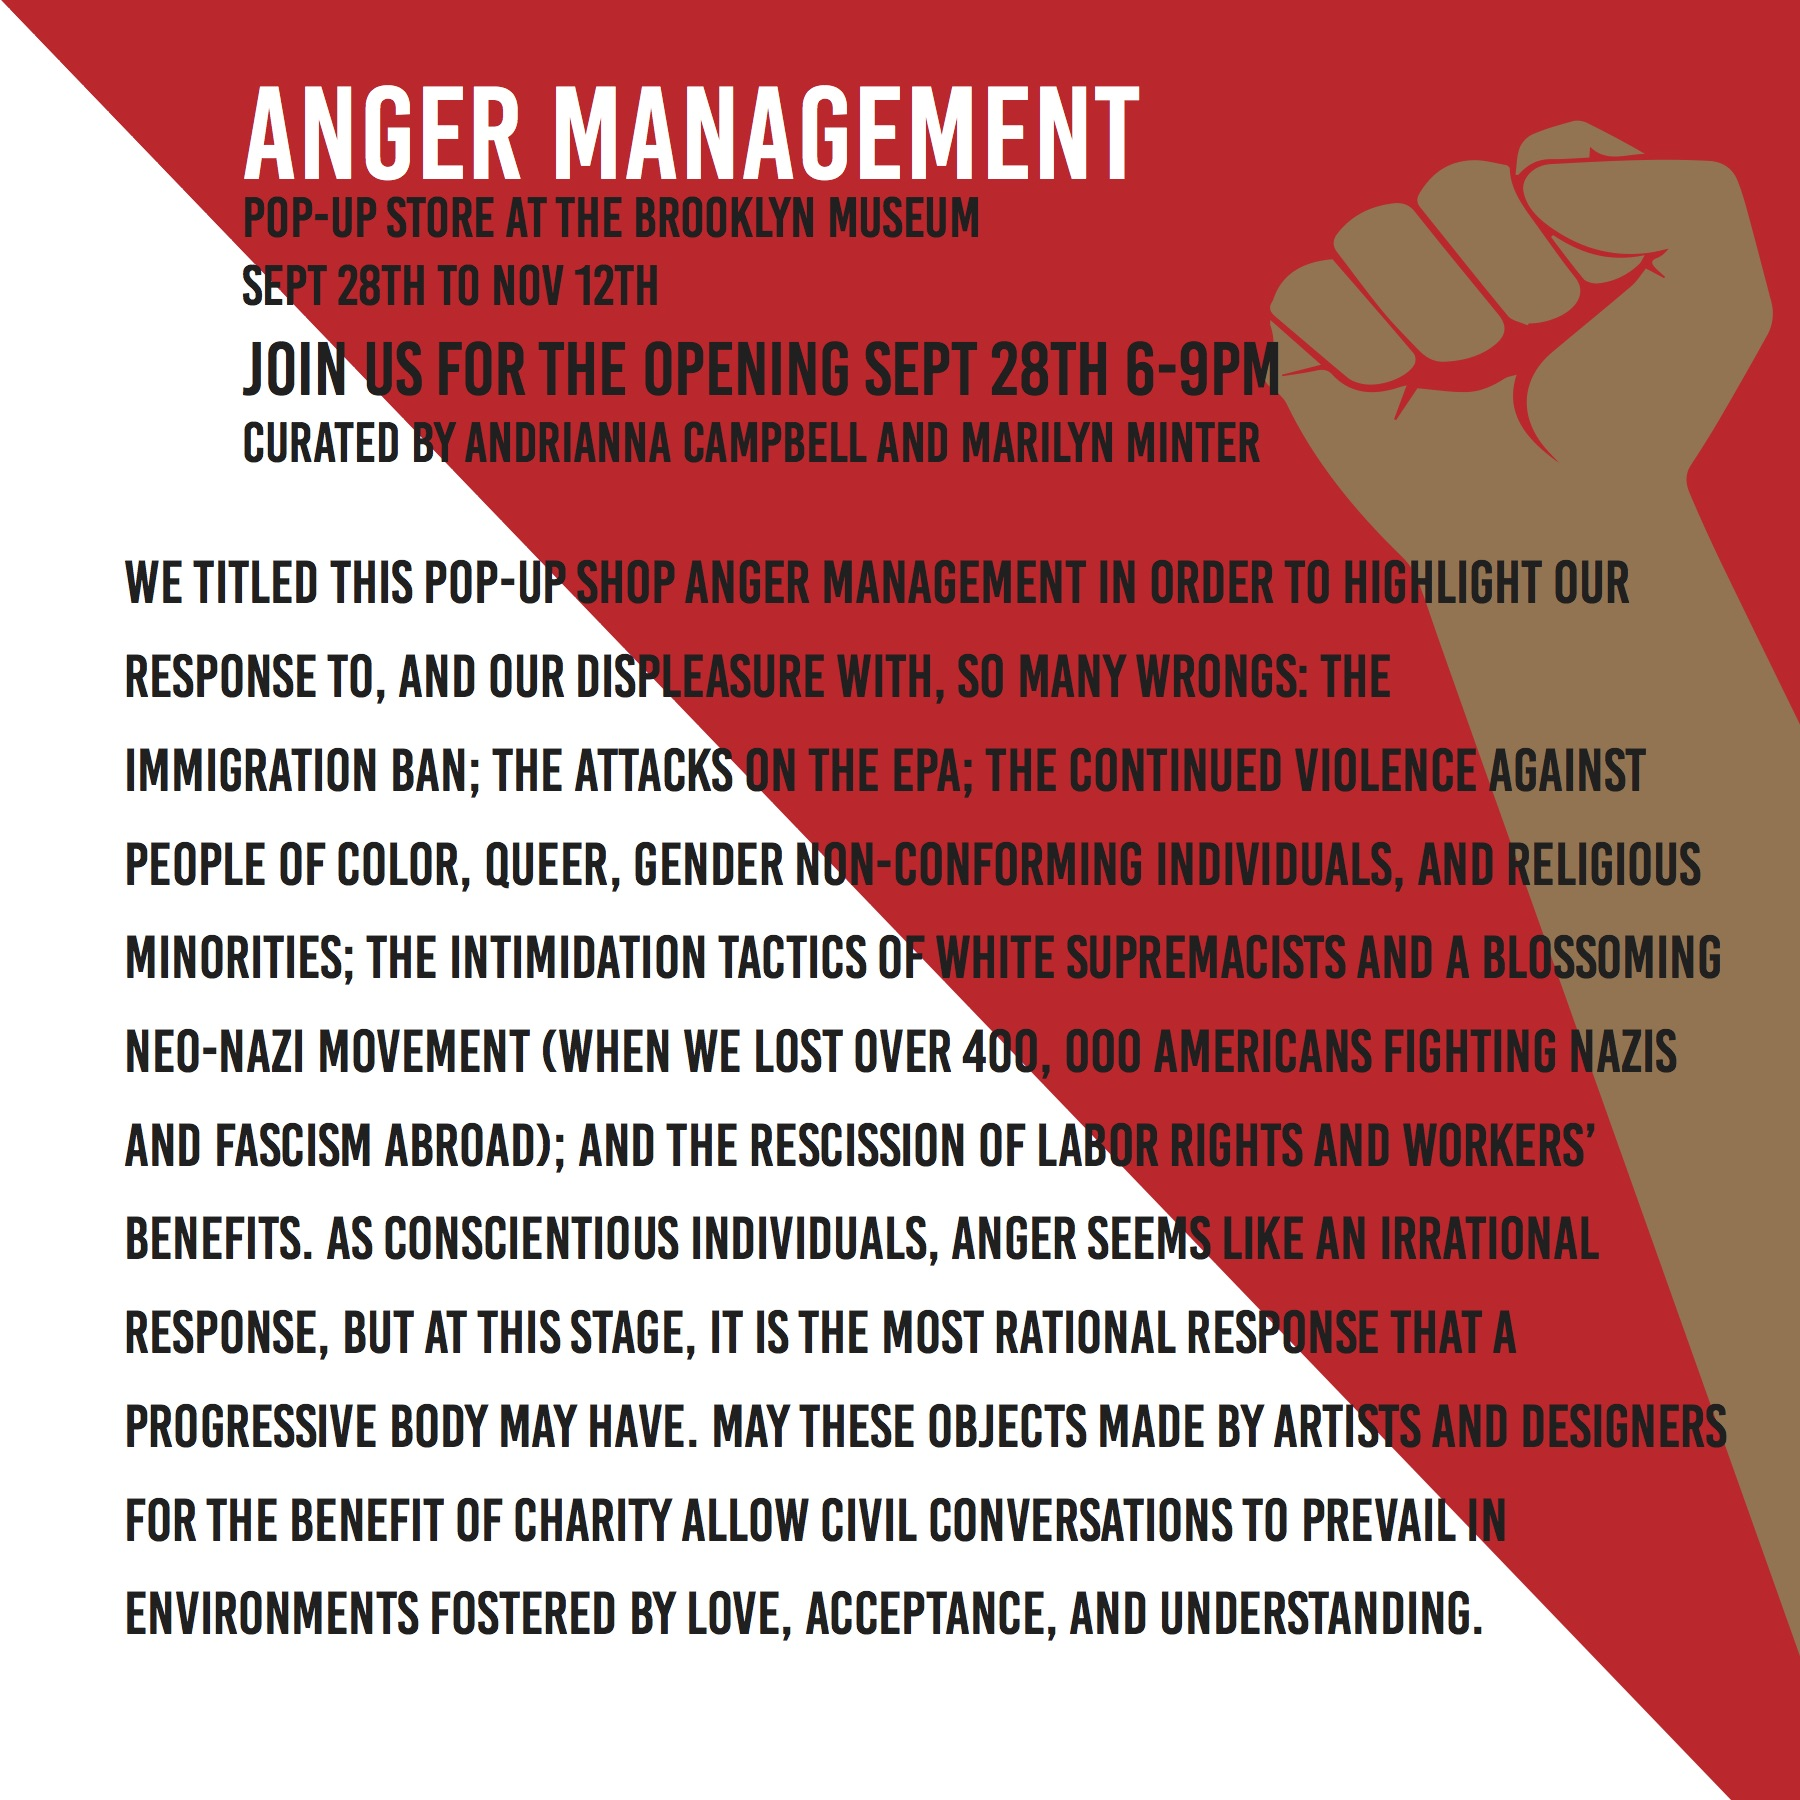 ANGER MANAGEMENT TEXT_B